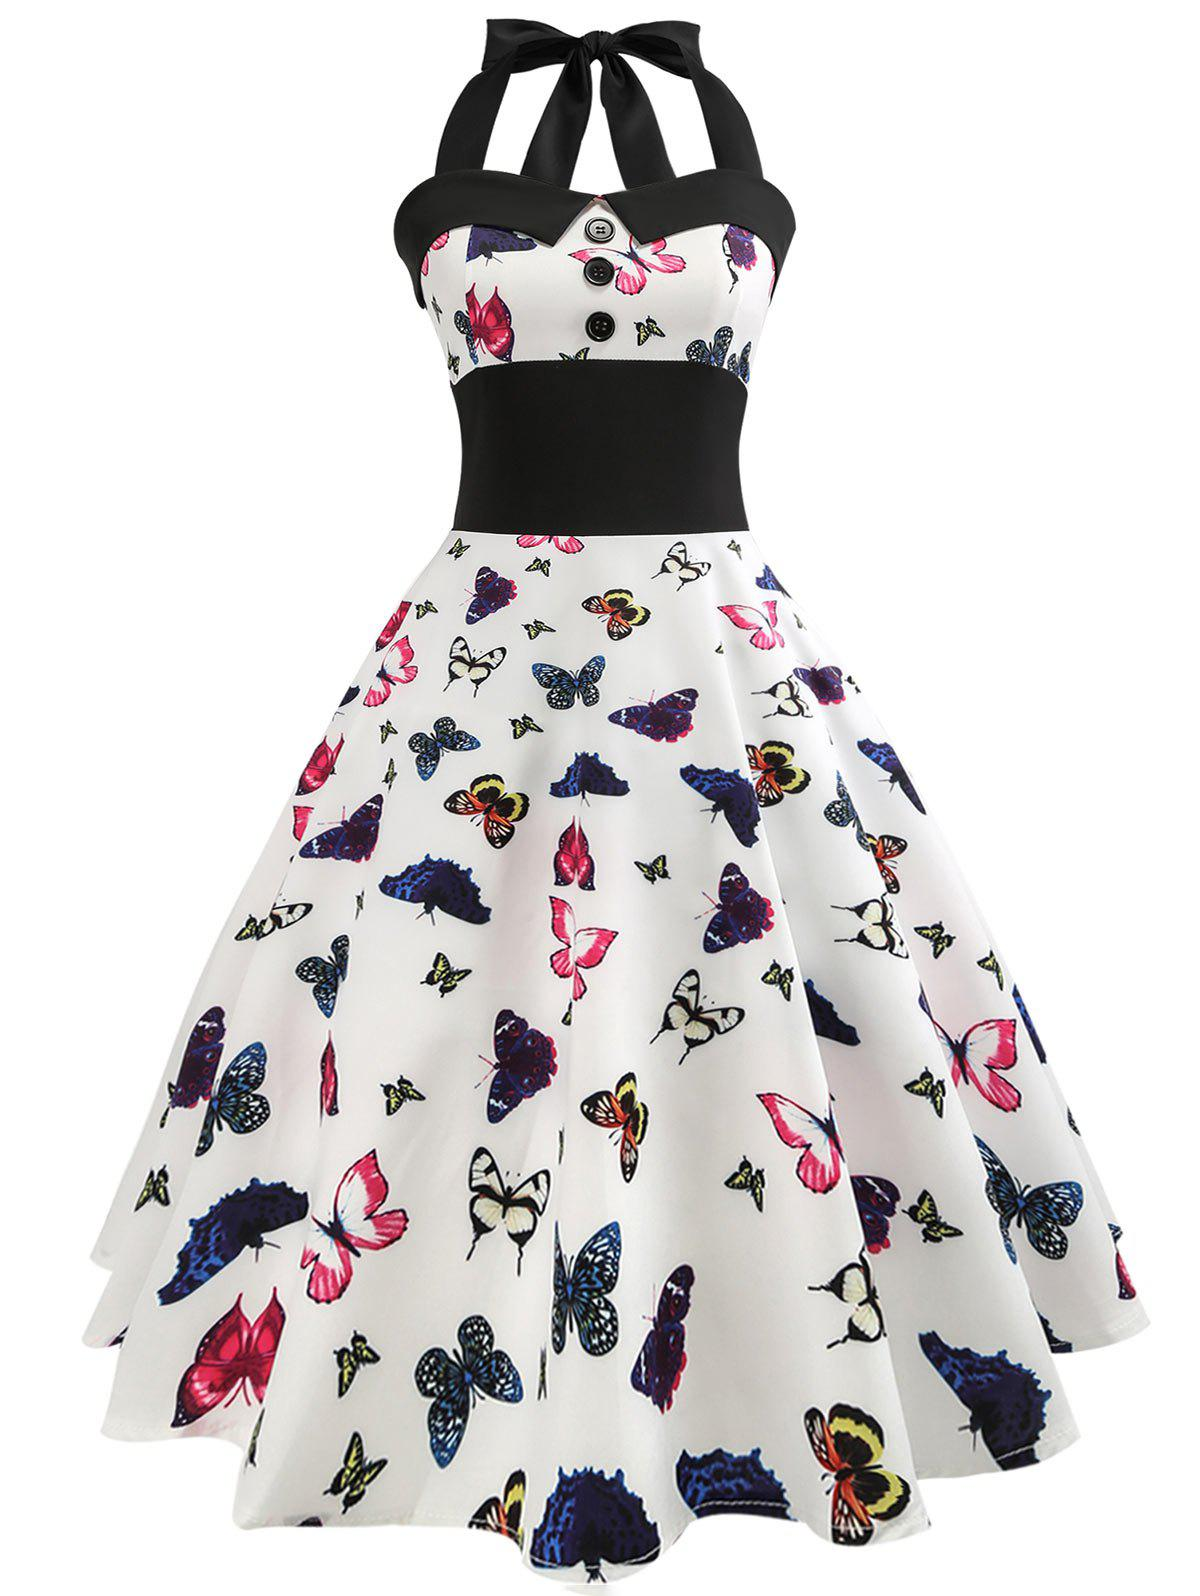 New Butterfly Halter Tied A Line Vintage Dress